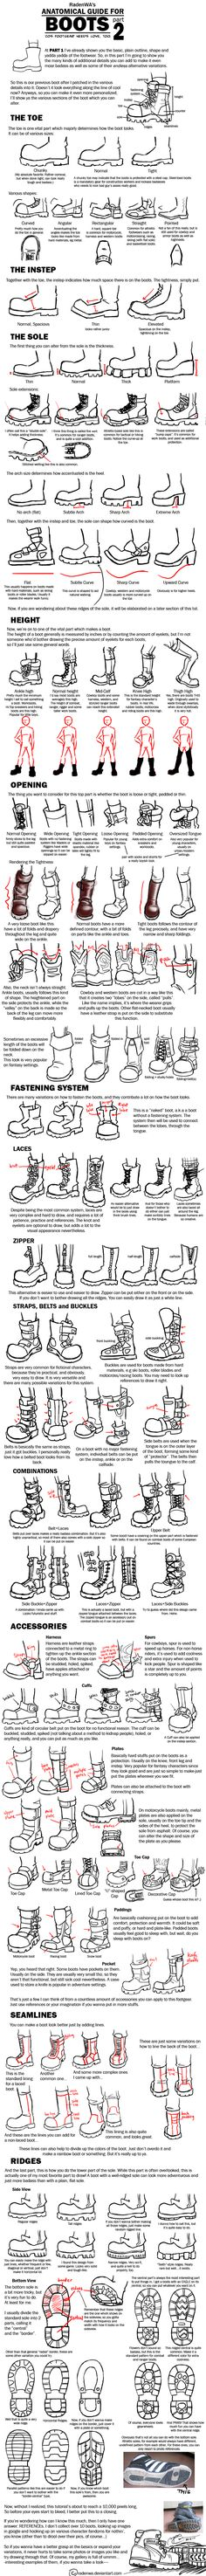 WA's BOOT Anatomy Tutorial Pt2 by *RadenWA on deviantART Technically a drawing tutorial, but really good for helping me visualize what I want exactly